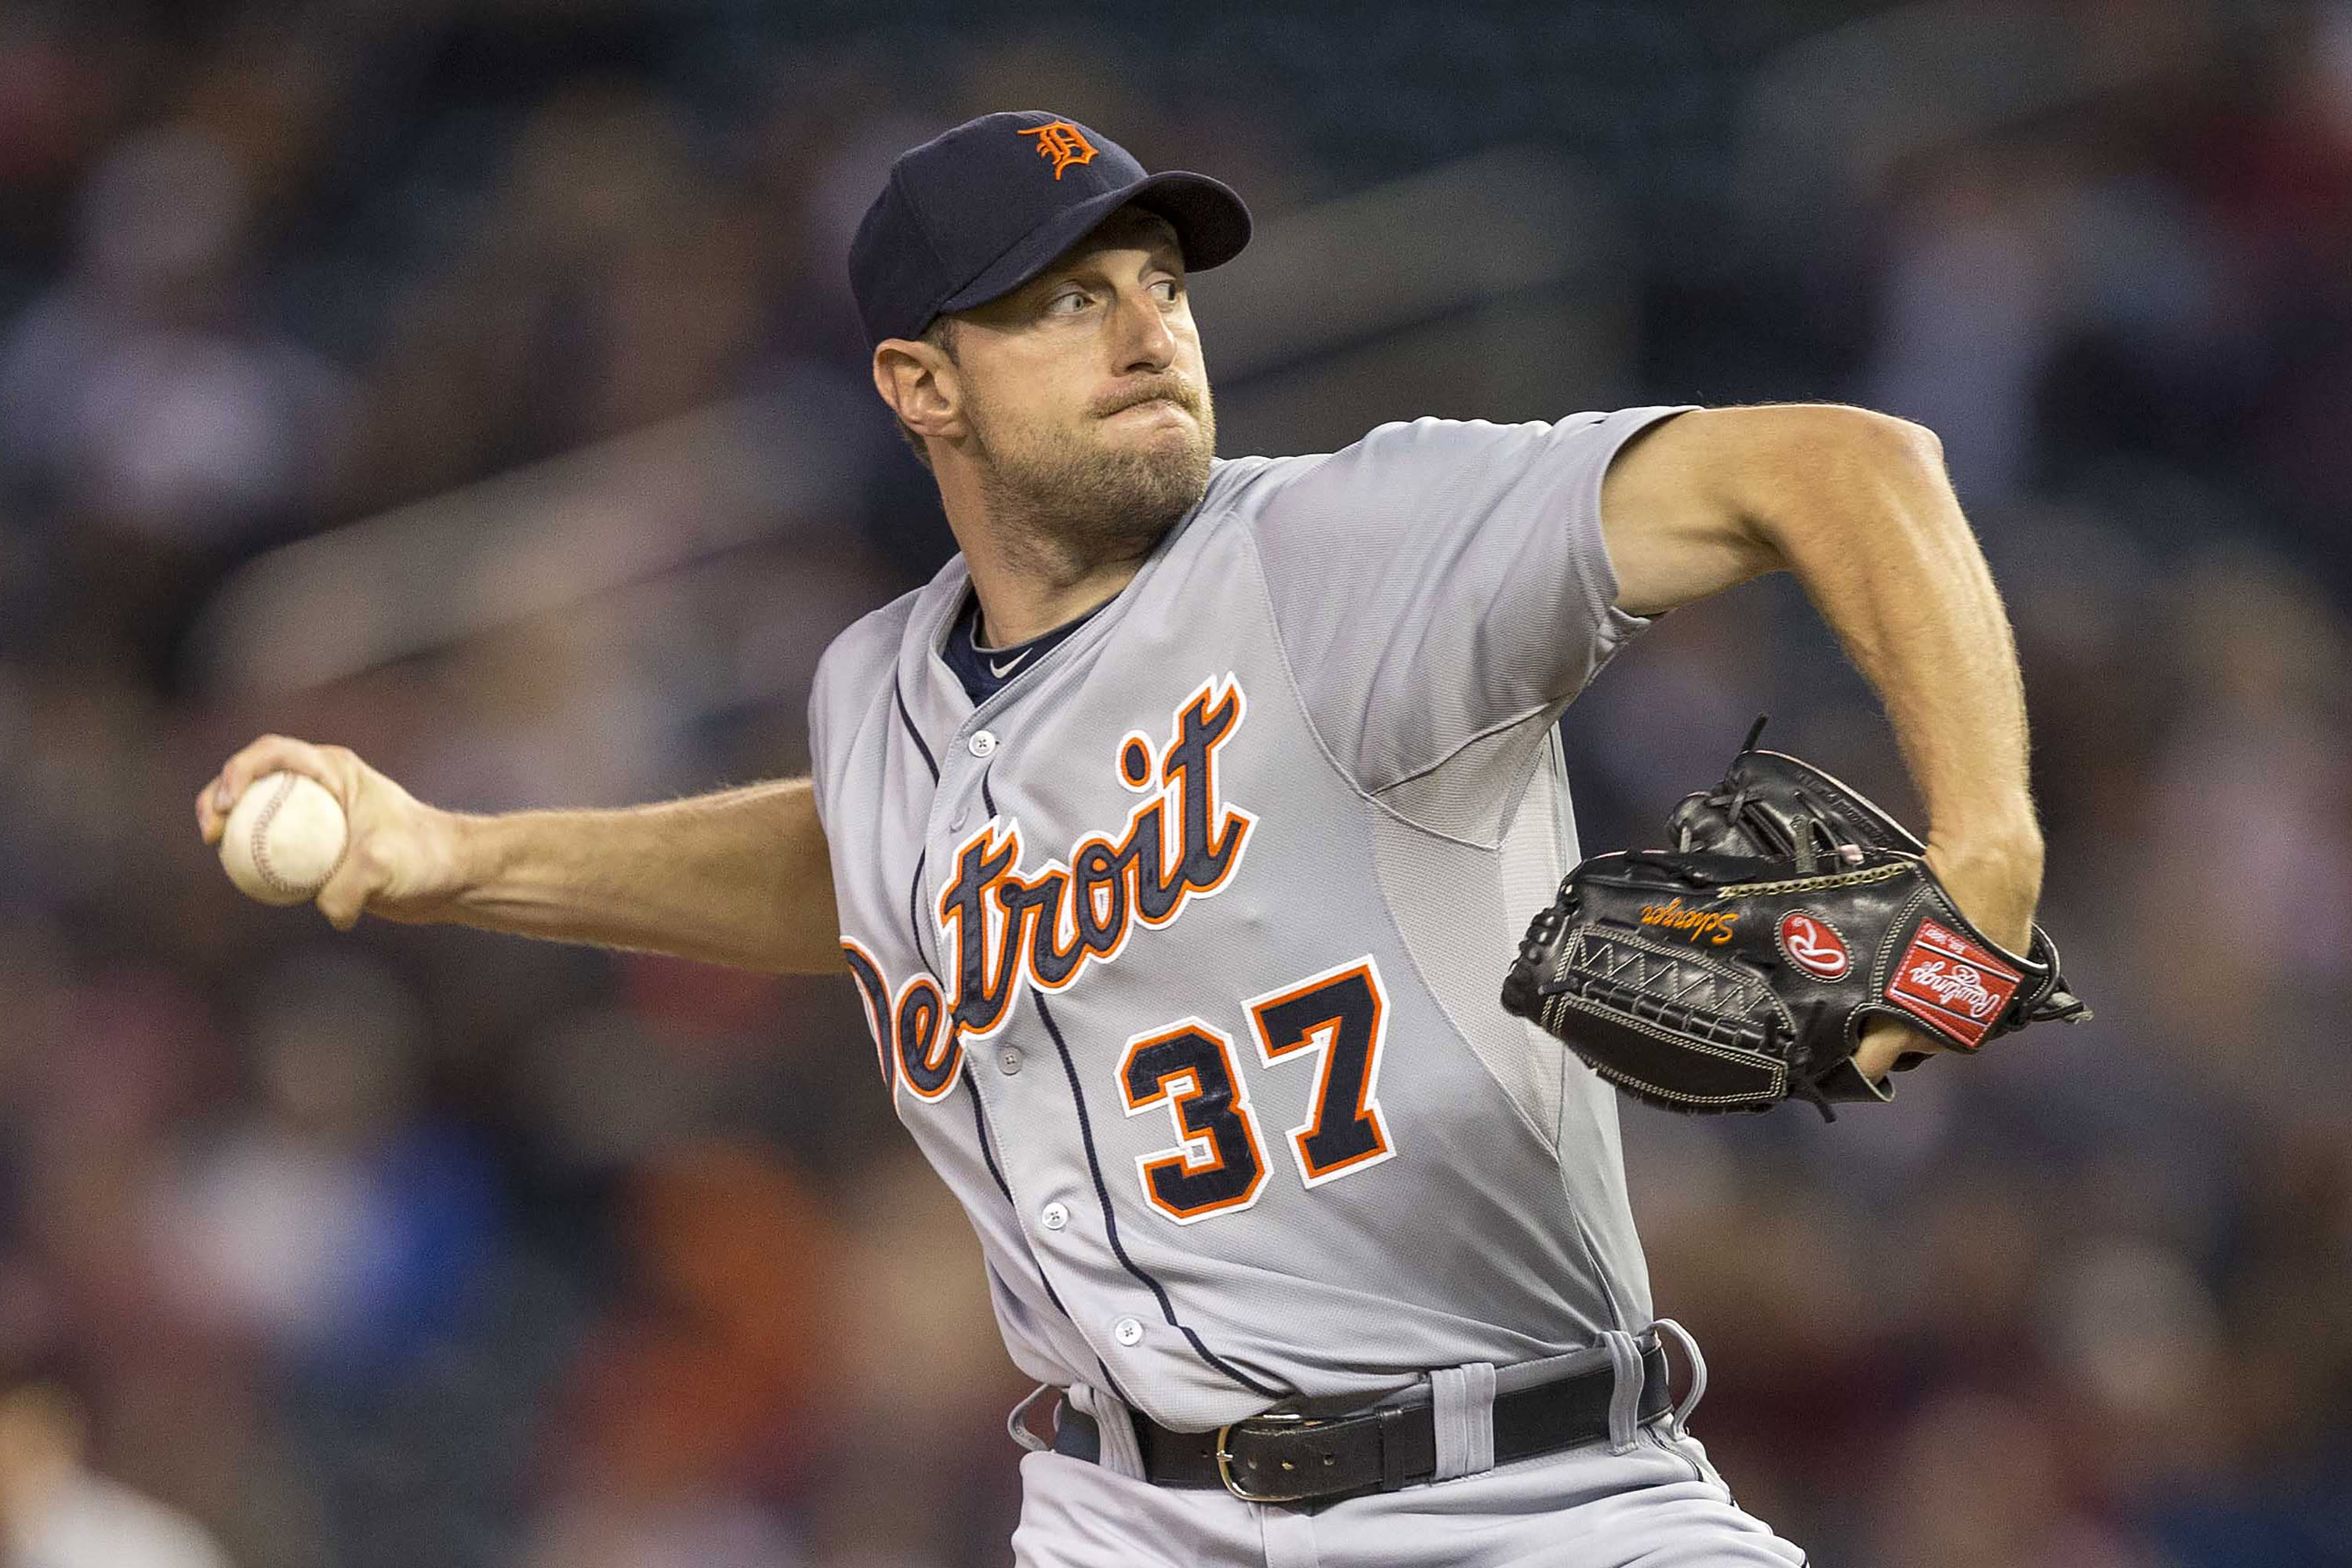 Max Scherzer thanks Tigers fans with full-page ad